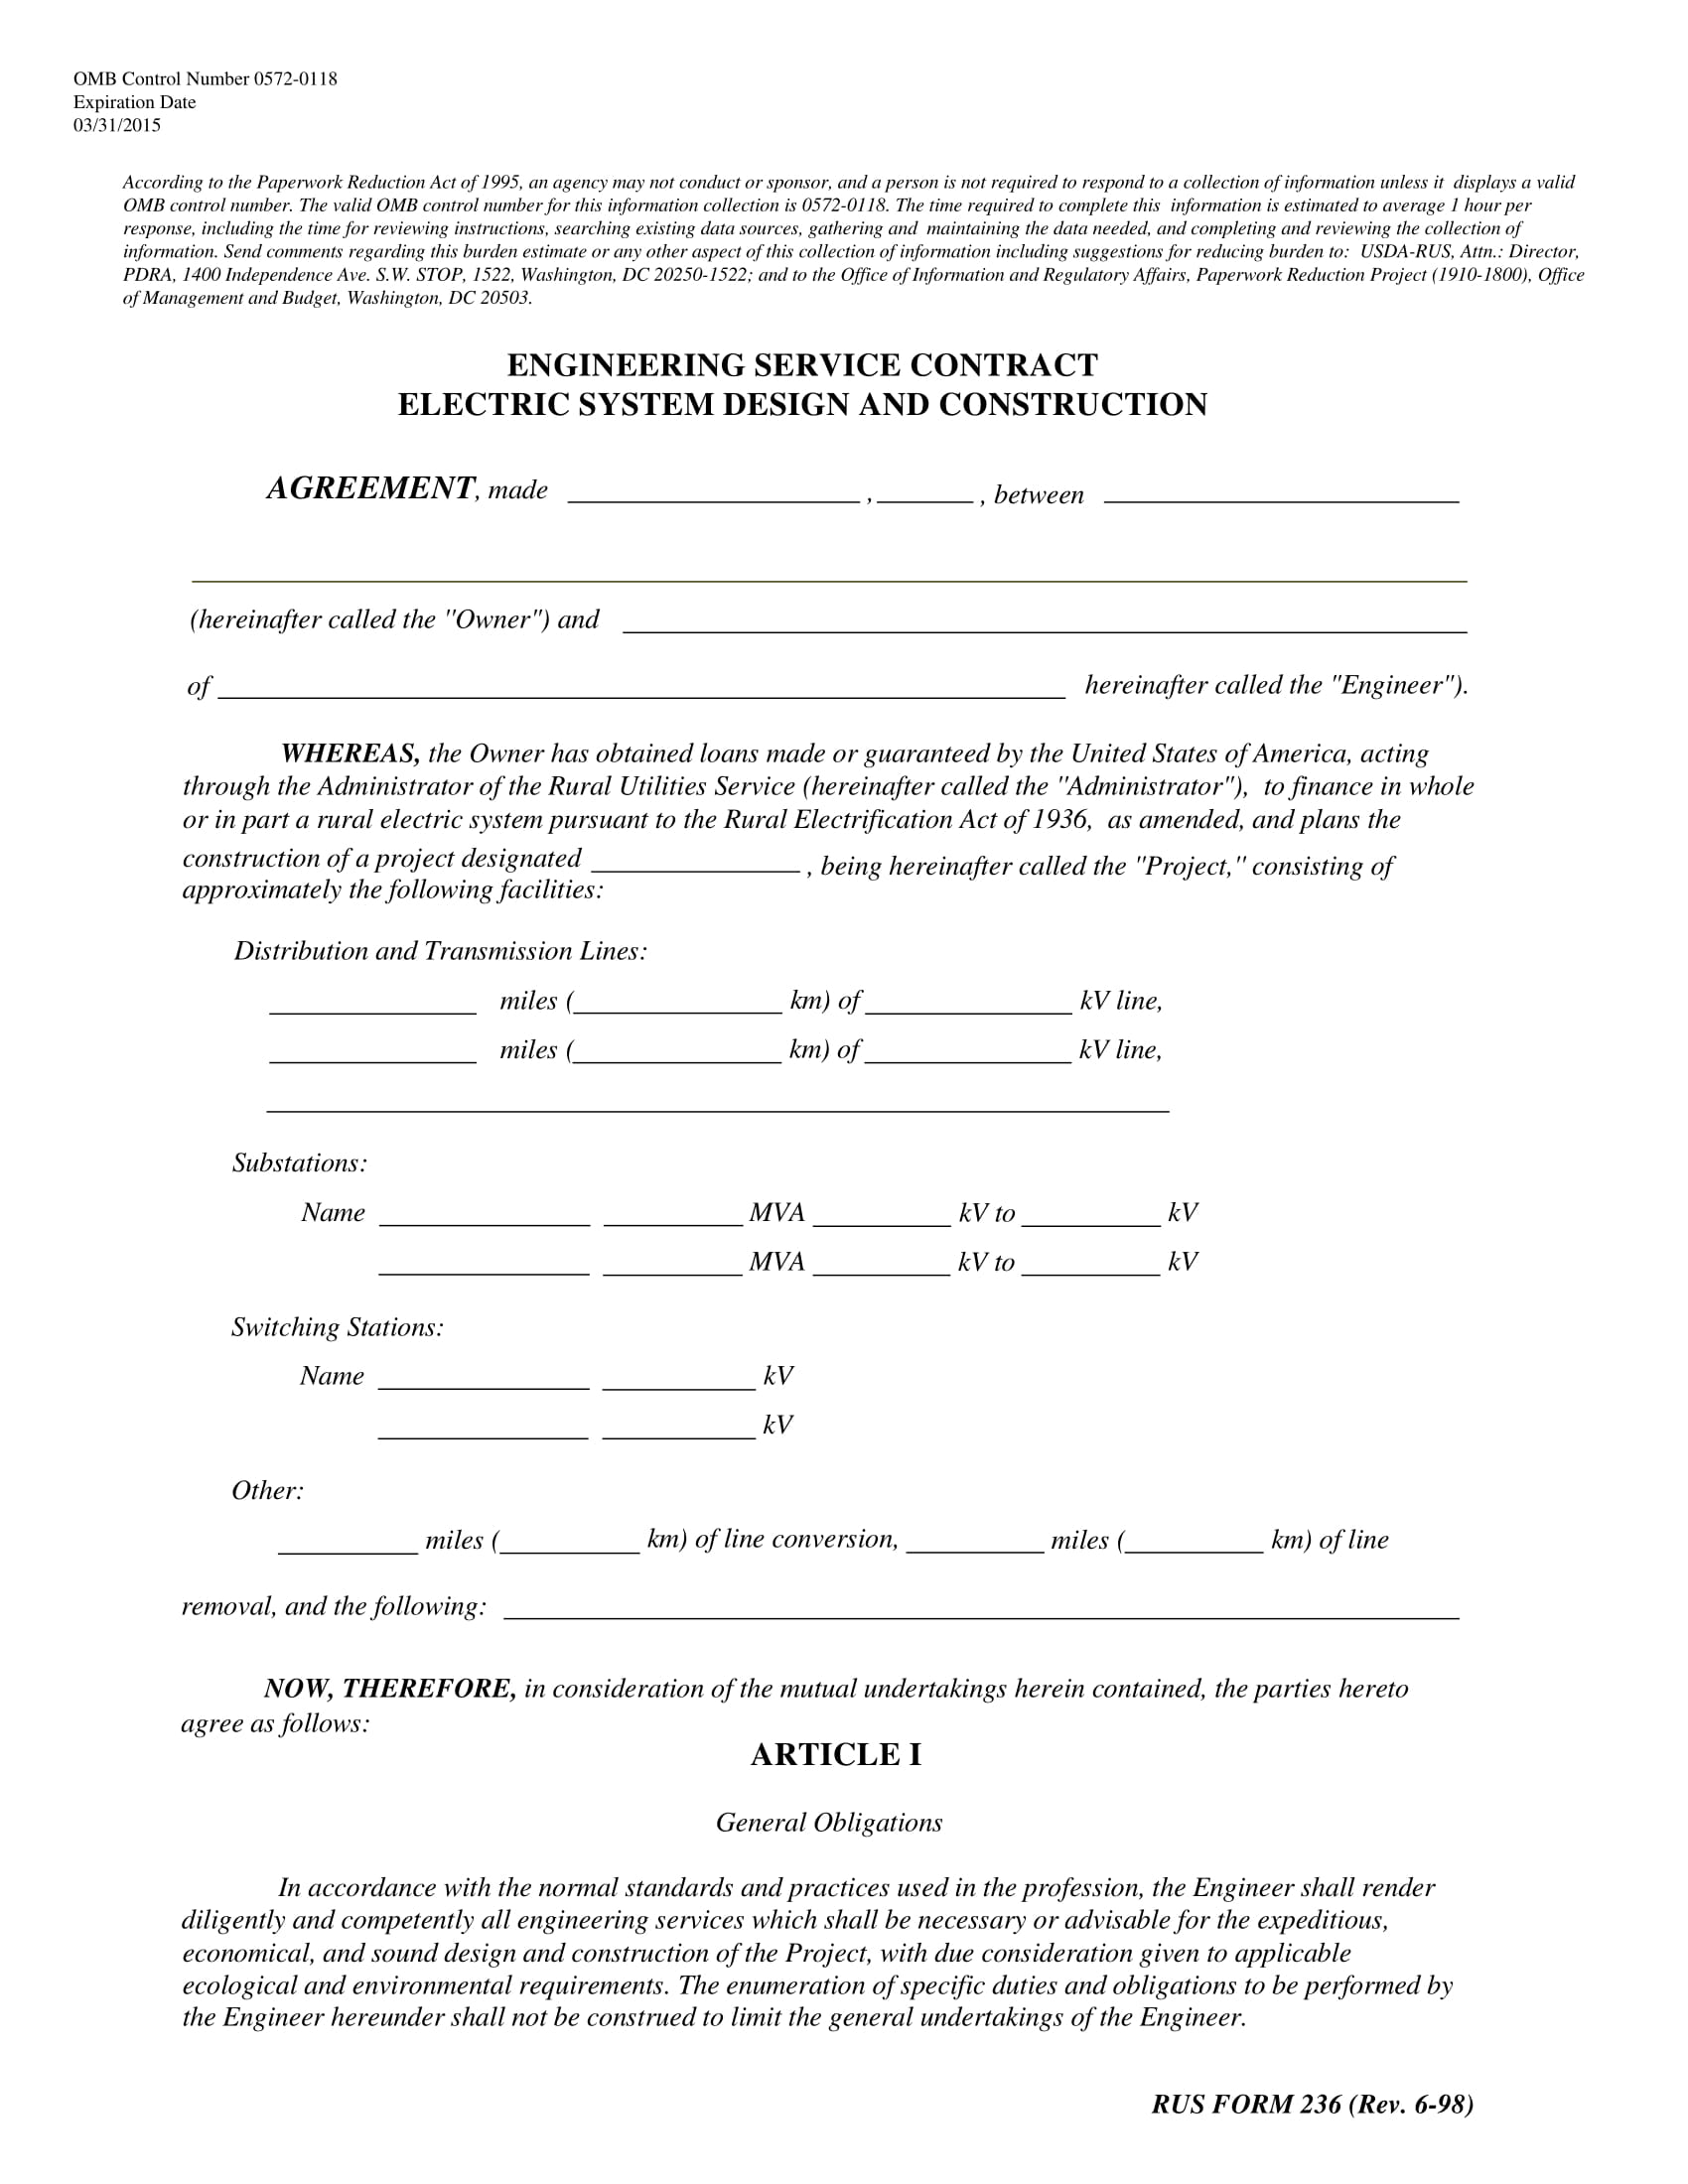 Advertising Contract Template ] | Advertising Contract Template ...